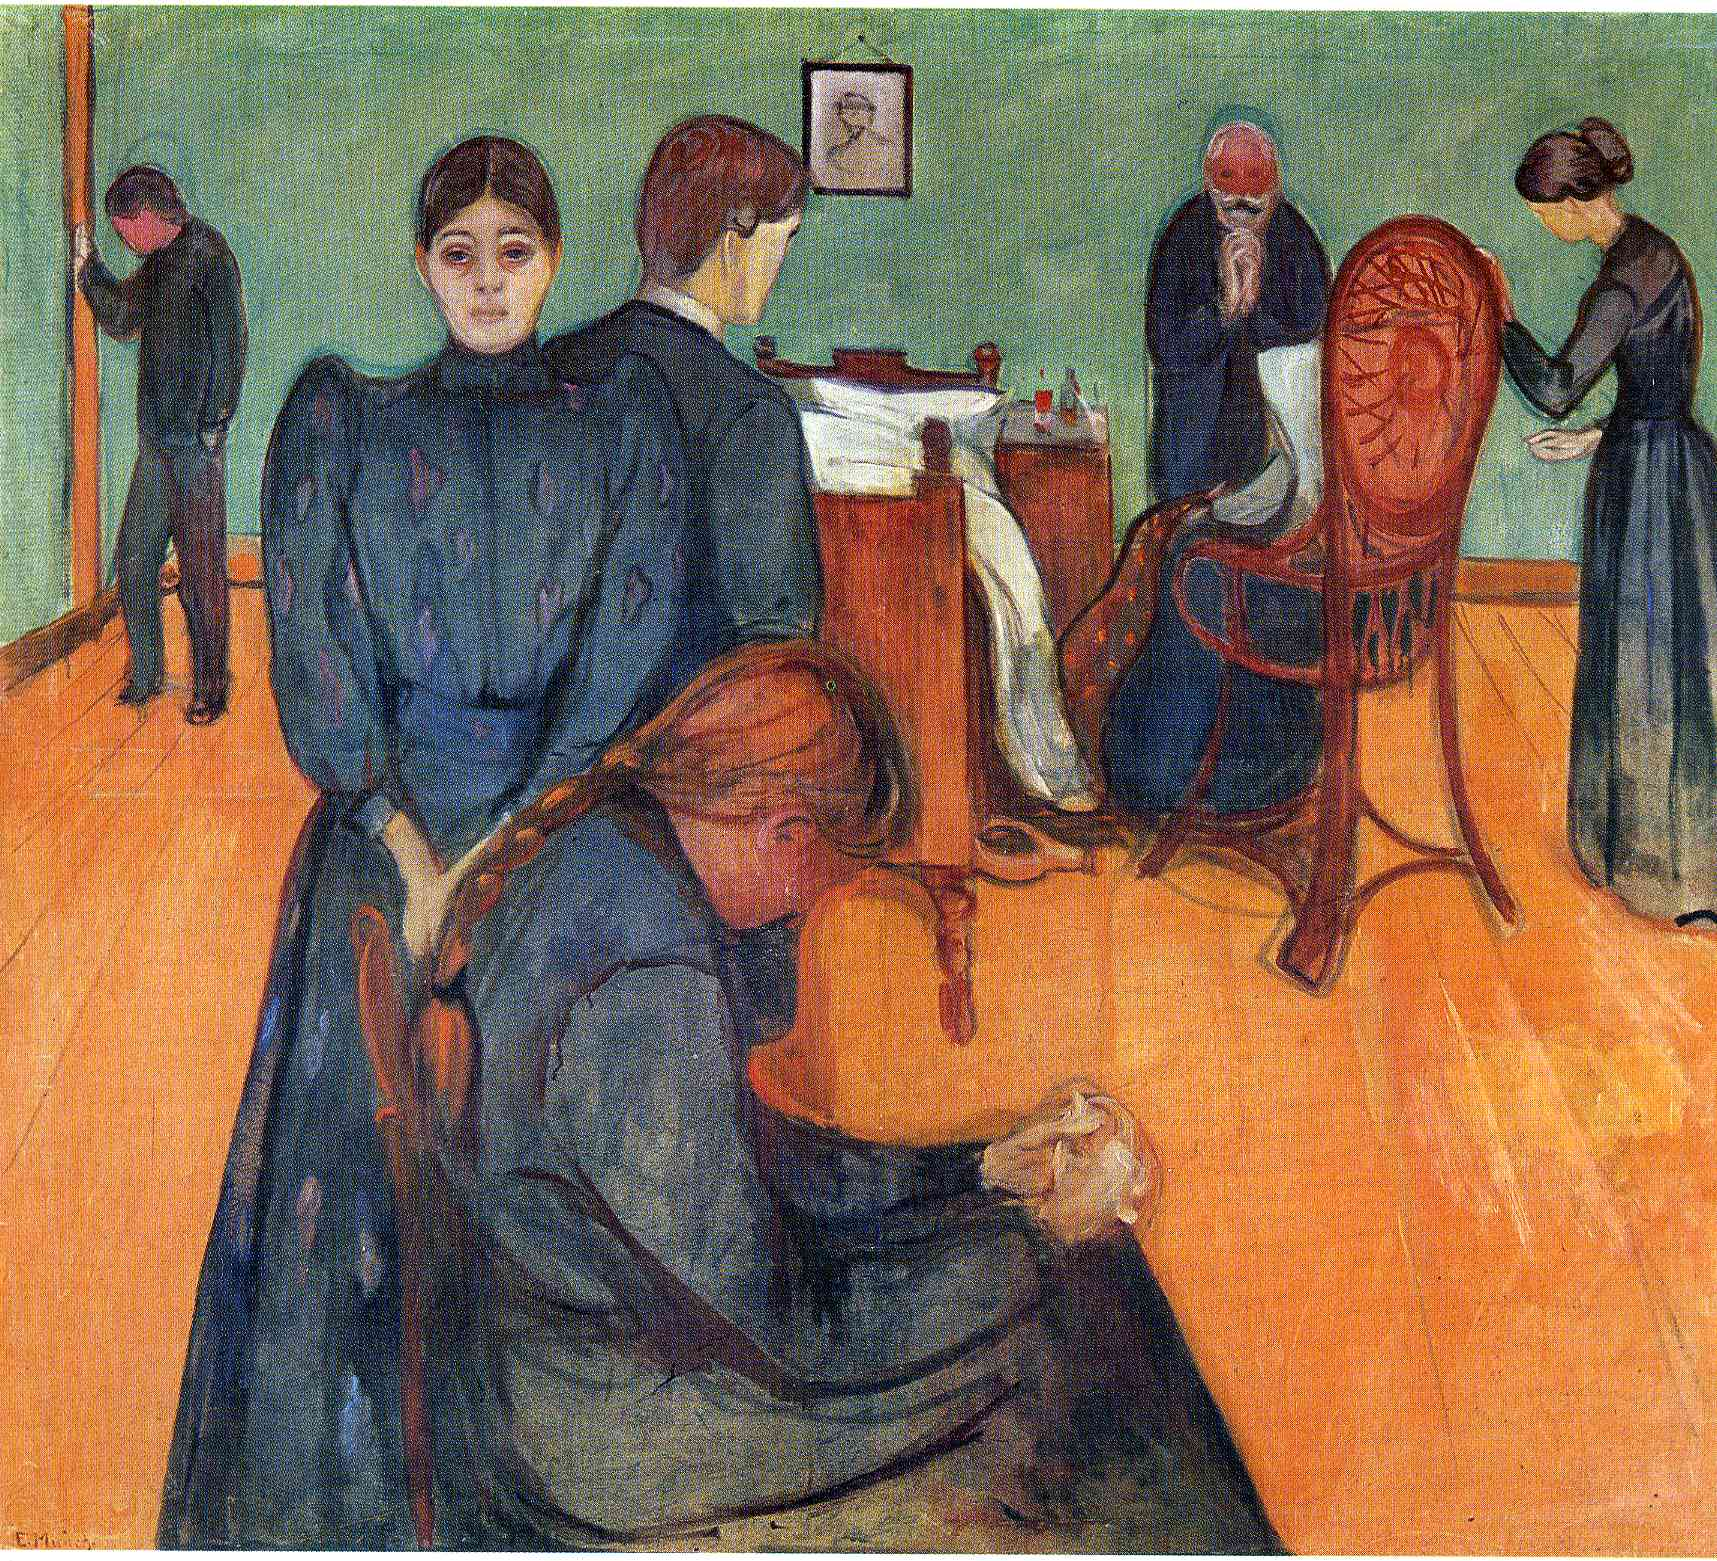 THE SICK CHILD MOTHER/'S GRIEF DISEASE 1885 PAINTING BY EDVARD MUNCH REPRO